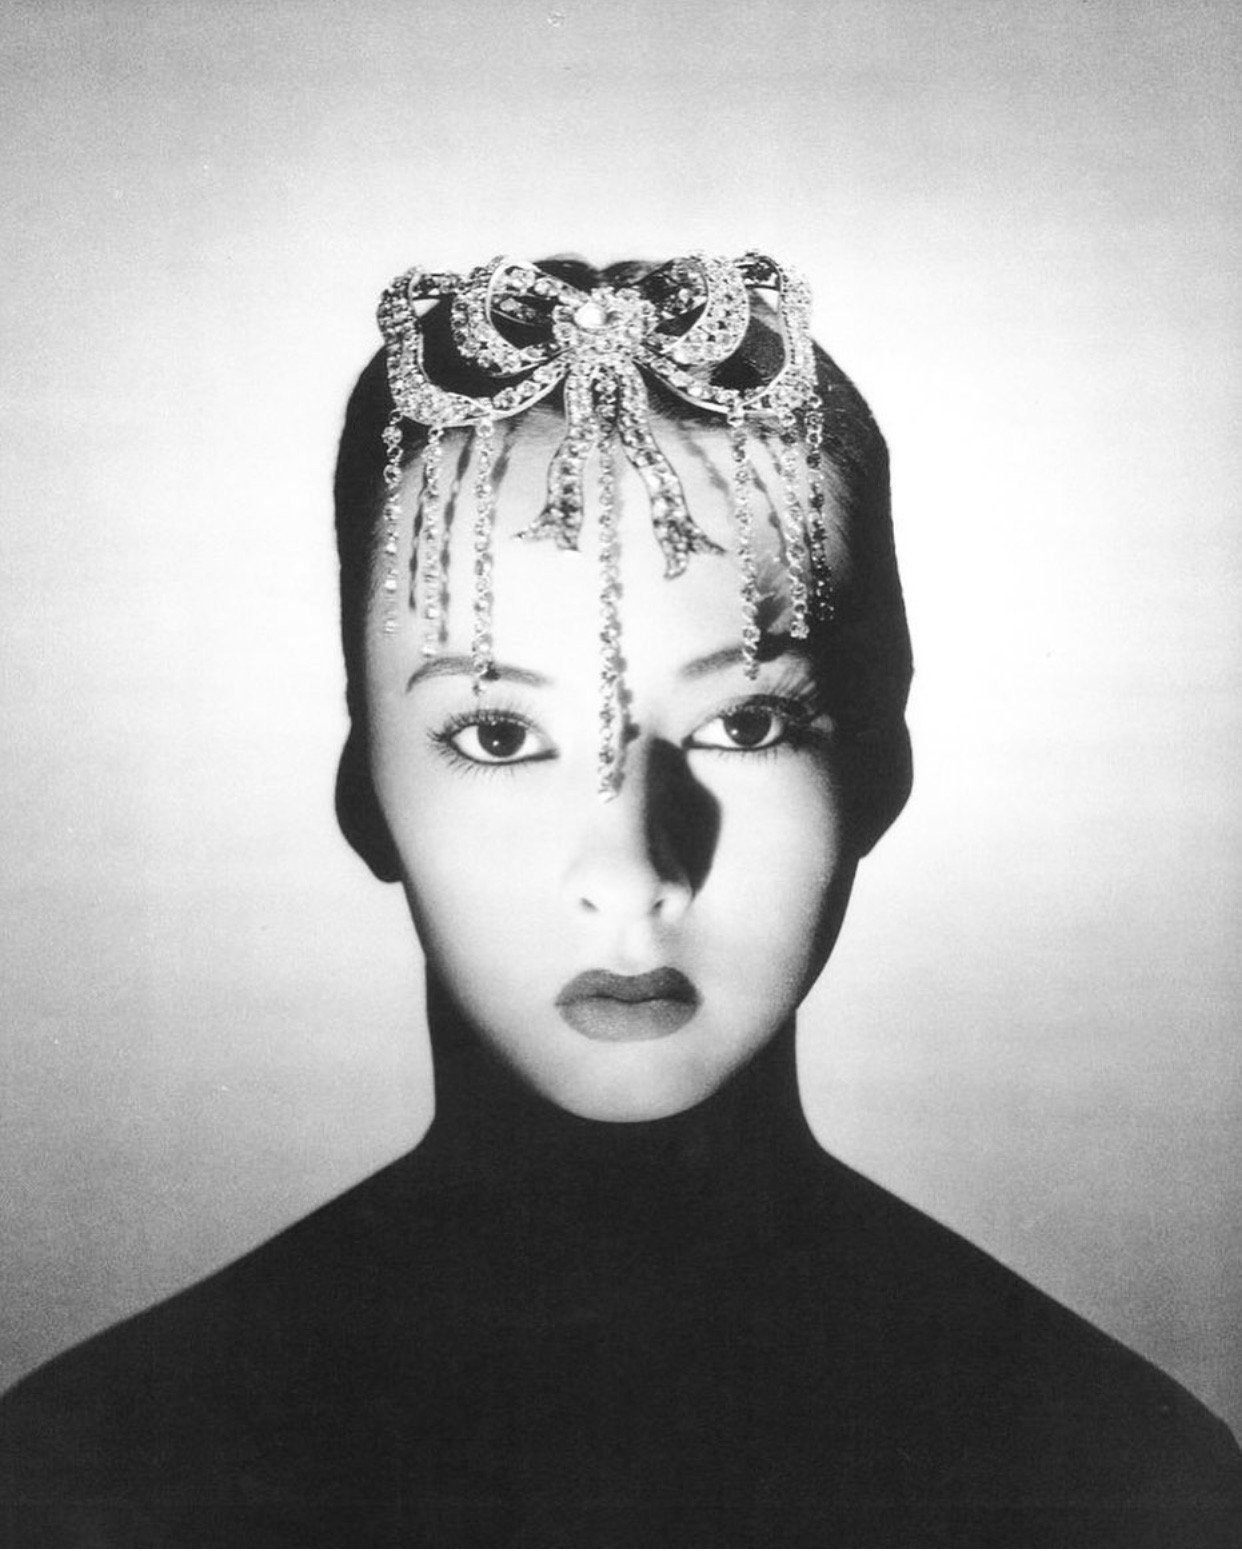 Black and white photo of actress Sono Osato wearing a Chanel jewelry headpiec in the shape of a bow and diamonds dangling down her face